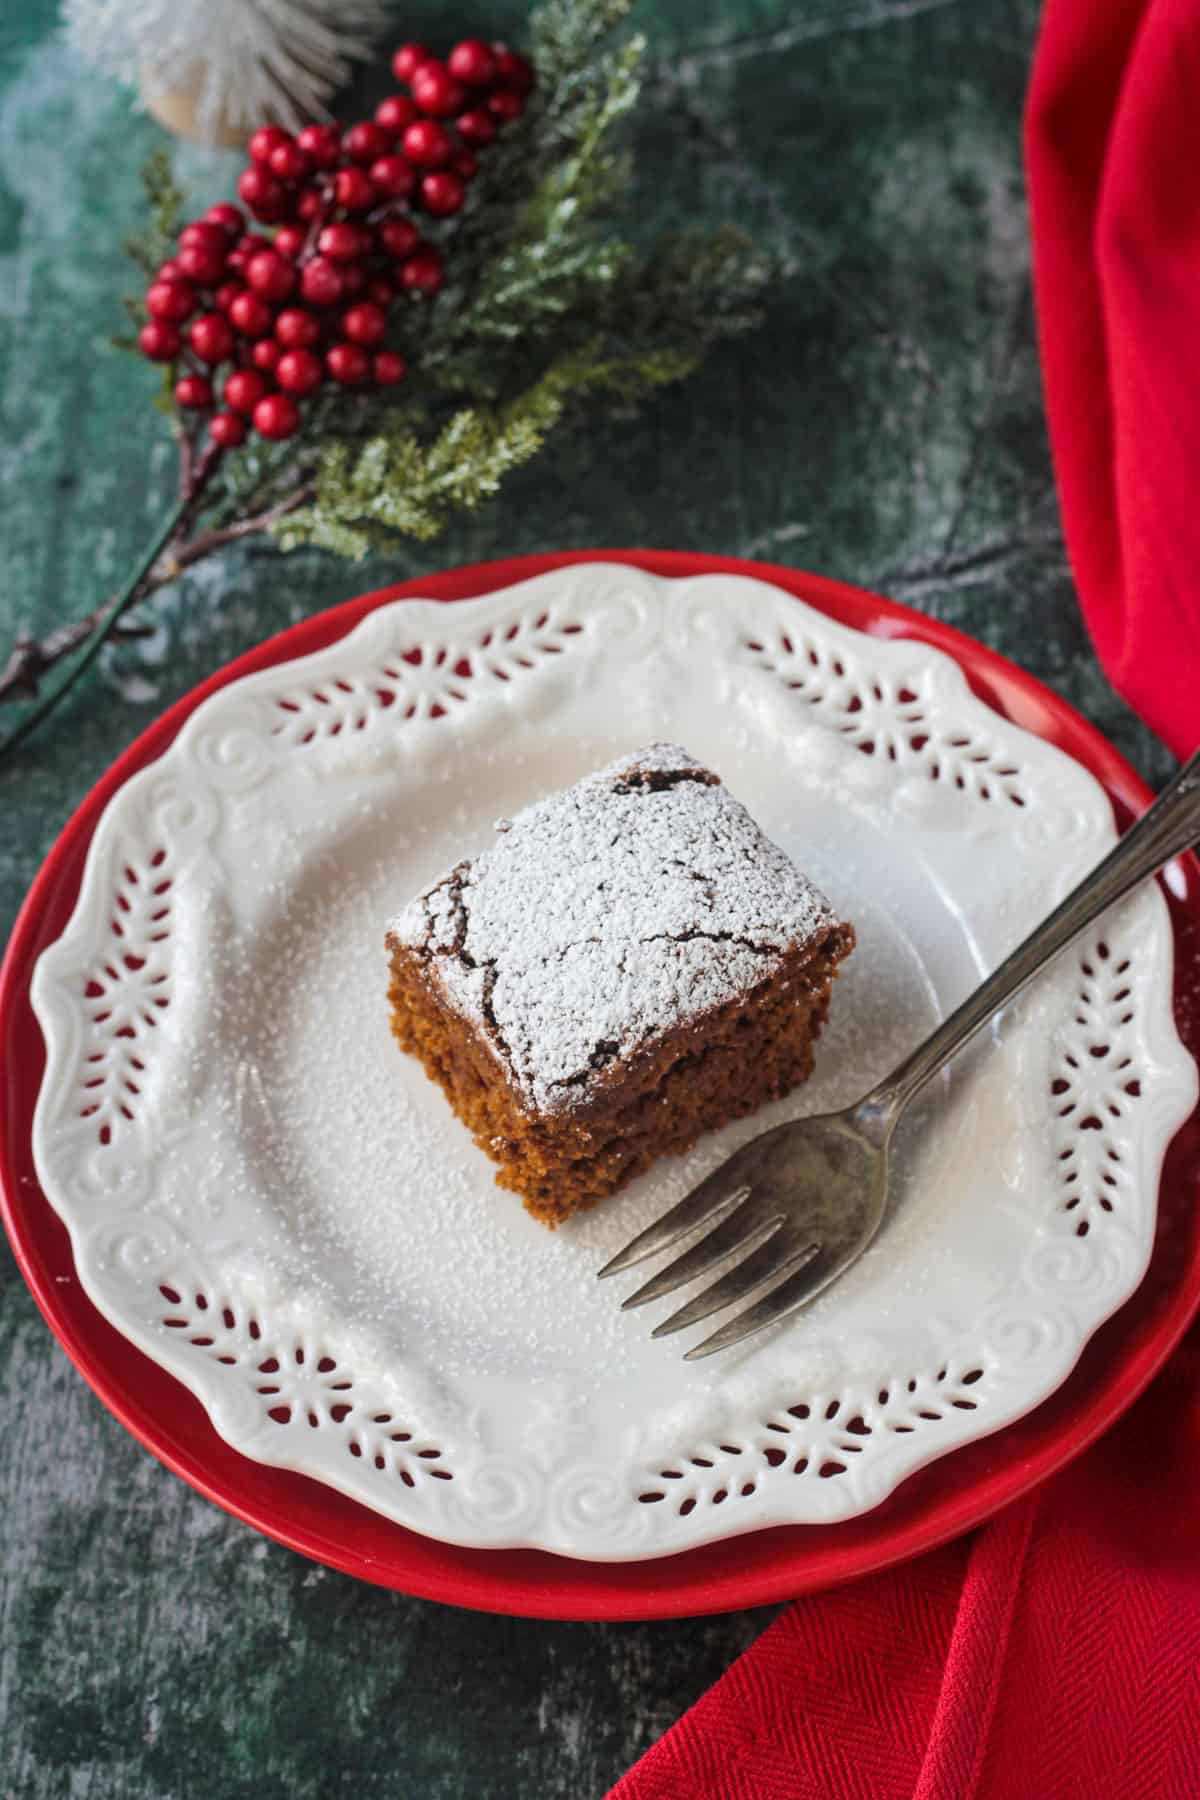 Powdered sugar dusted cake on a white plate with a fork.